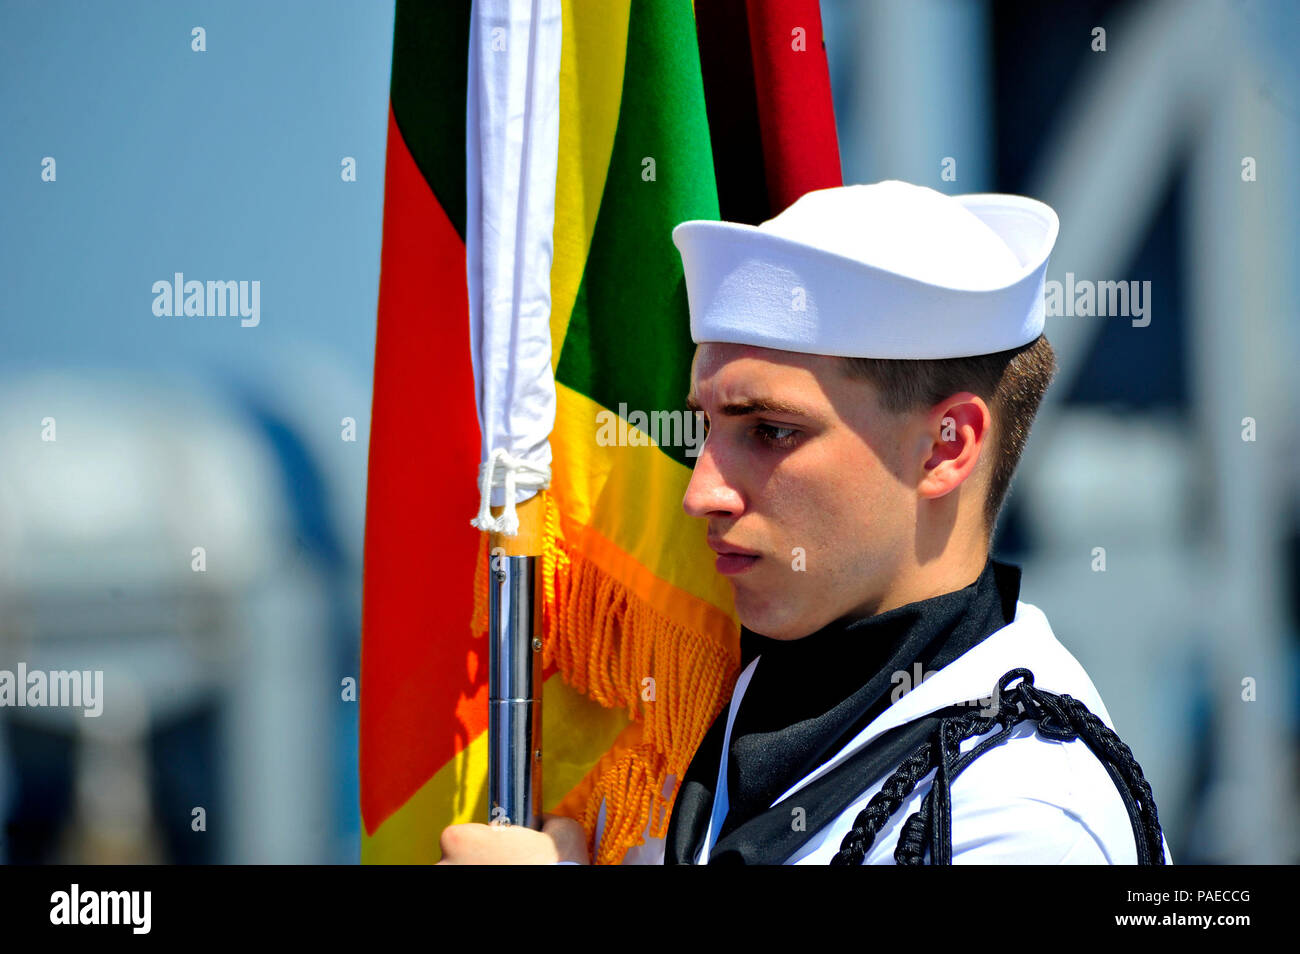 160329-N-YL053-097 COLOMBO, Sri Lanka (March 29, 2016) - Yeoman 3rd Class Daniel Ross, attached to the U.S. 7th Fleet flagship USS Blue Ridge (LCC 19), parades the colors during a change of command ceremony. Capt. Kyle P. Higgins was relieved by Capt. Matthew Paradise in Colombo, Sri Lanka.Blue Ridge is currently on patrol in the 7th Fleet area of operations strengthening and fostering relationships within the Indo-Asia-Pacific. (U.S. Navy photo by Mass Communication Specialist 2nd Class Jacob Waldrop/Released) - Stock Image